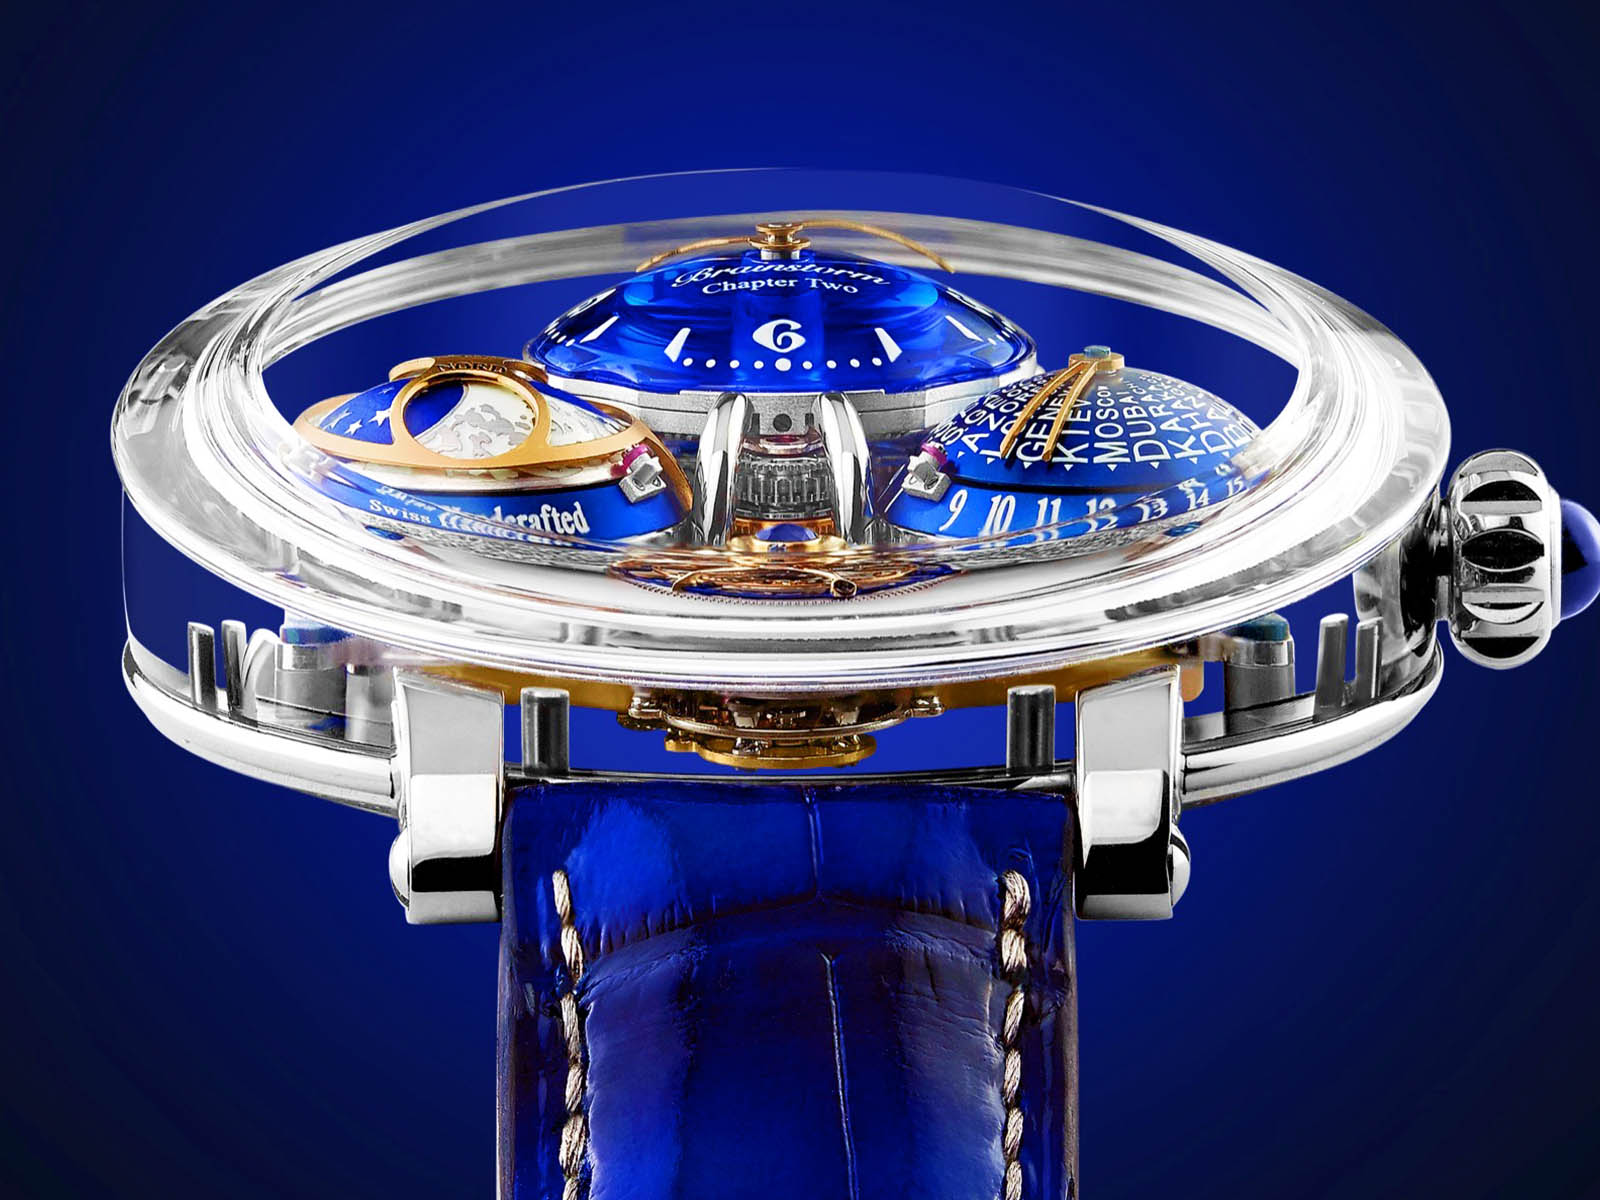 r26c2-001-bovet-1822-recital-26-brainstorm-chapter-2-2.jpg